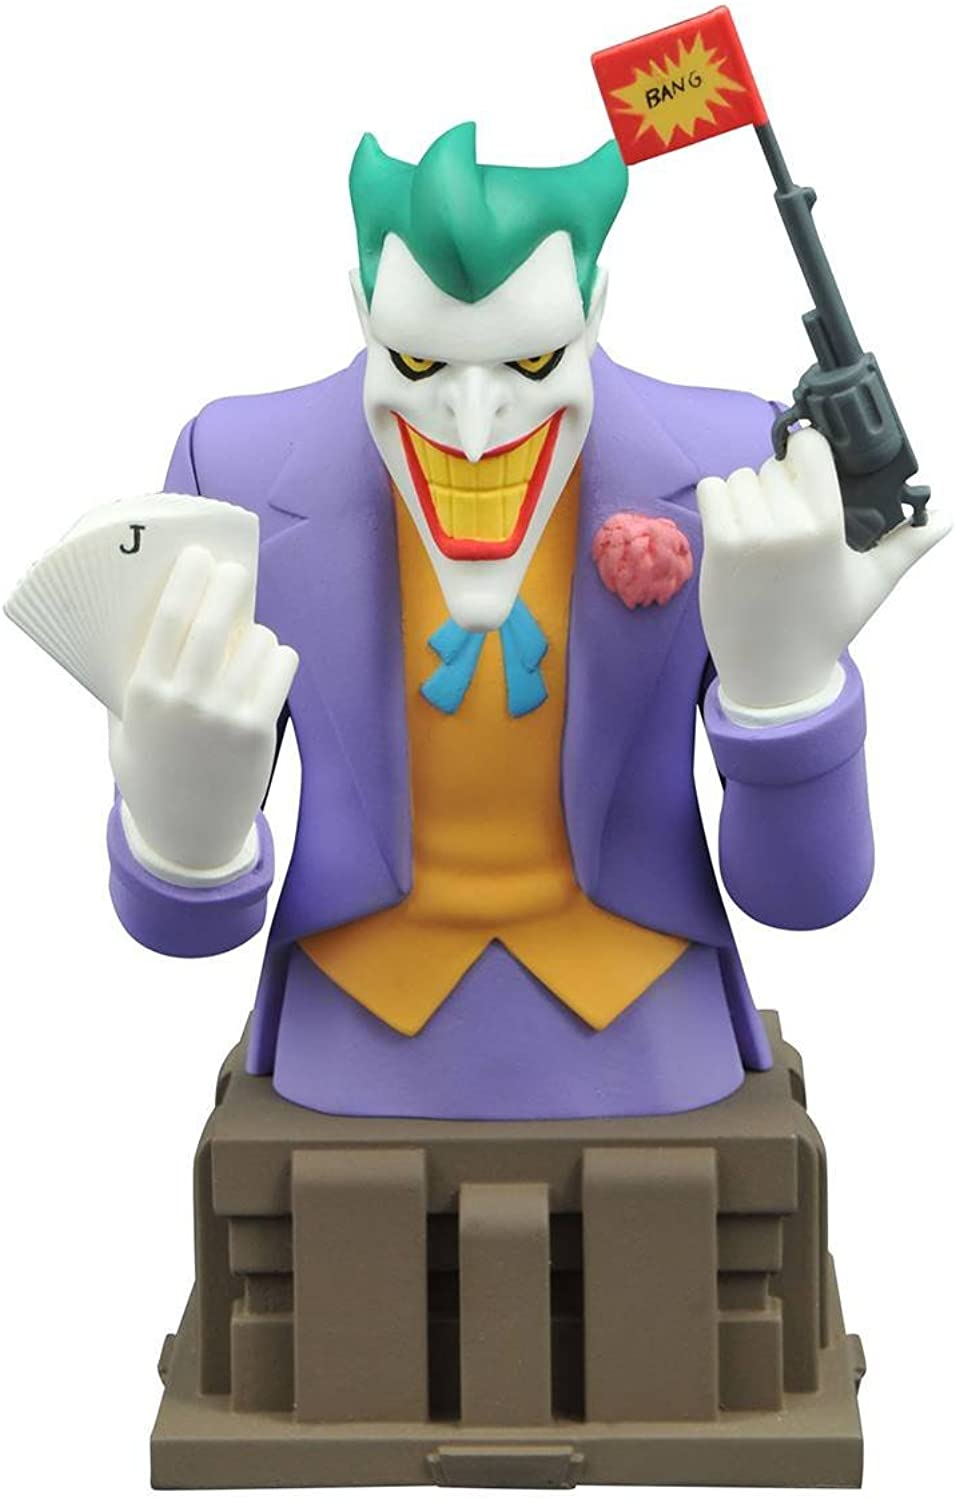 Batuomo The Animated Series Joker autobust Limited edizione of 3000 Pieces Worldwide by Diamond Select